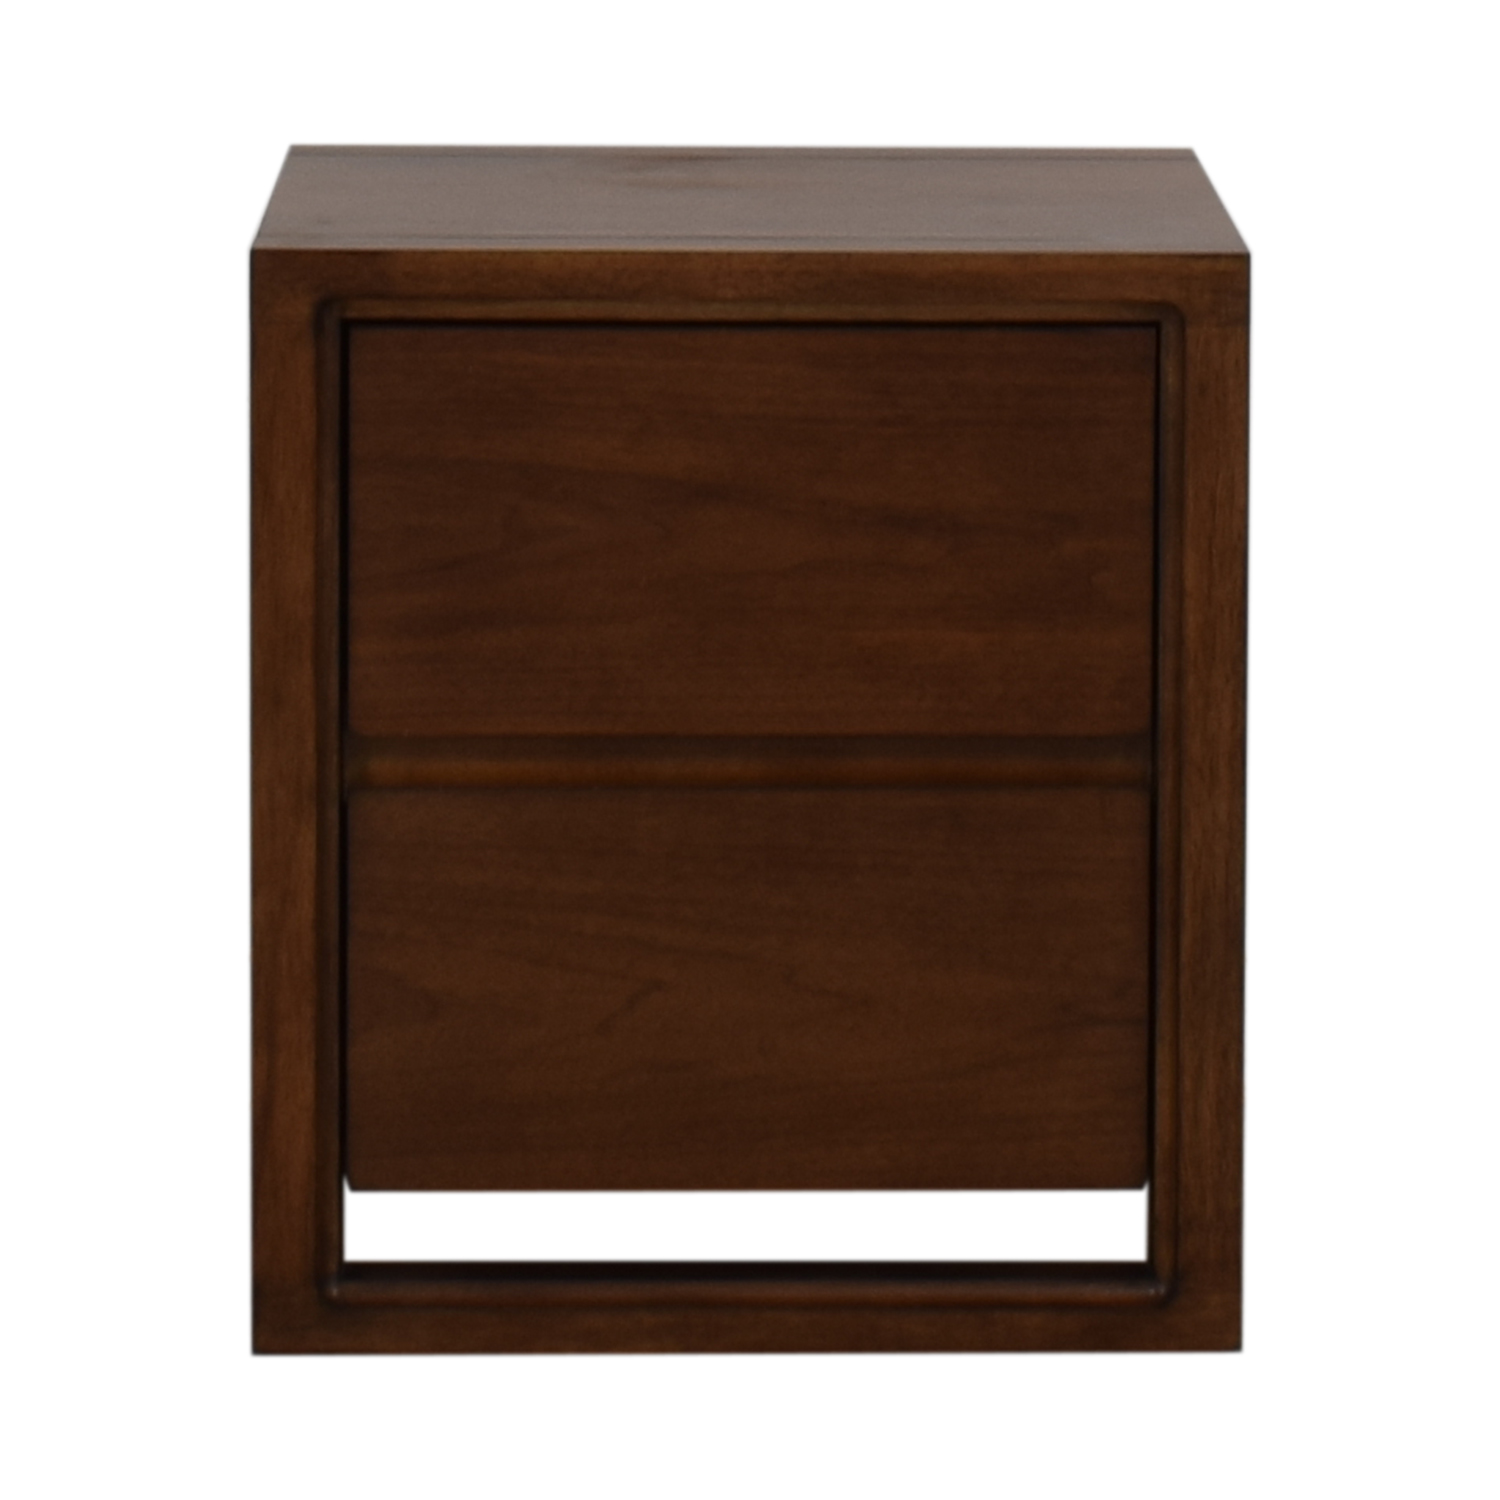 Raymour & Flanigan Raymour & Flanigan Aversa Two-Drawer End Table for sale